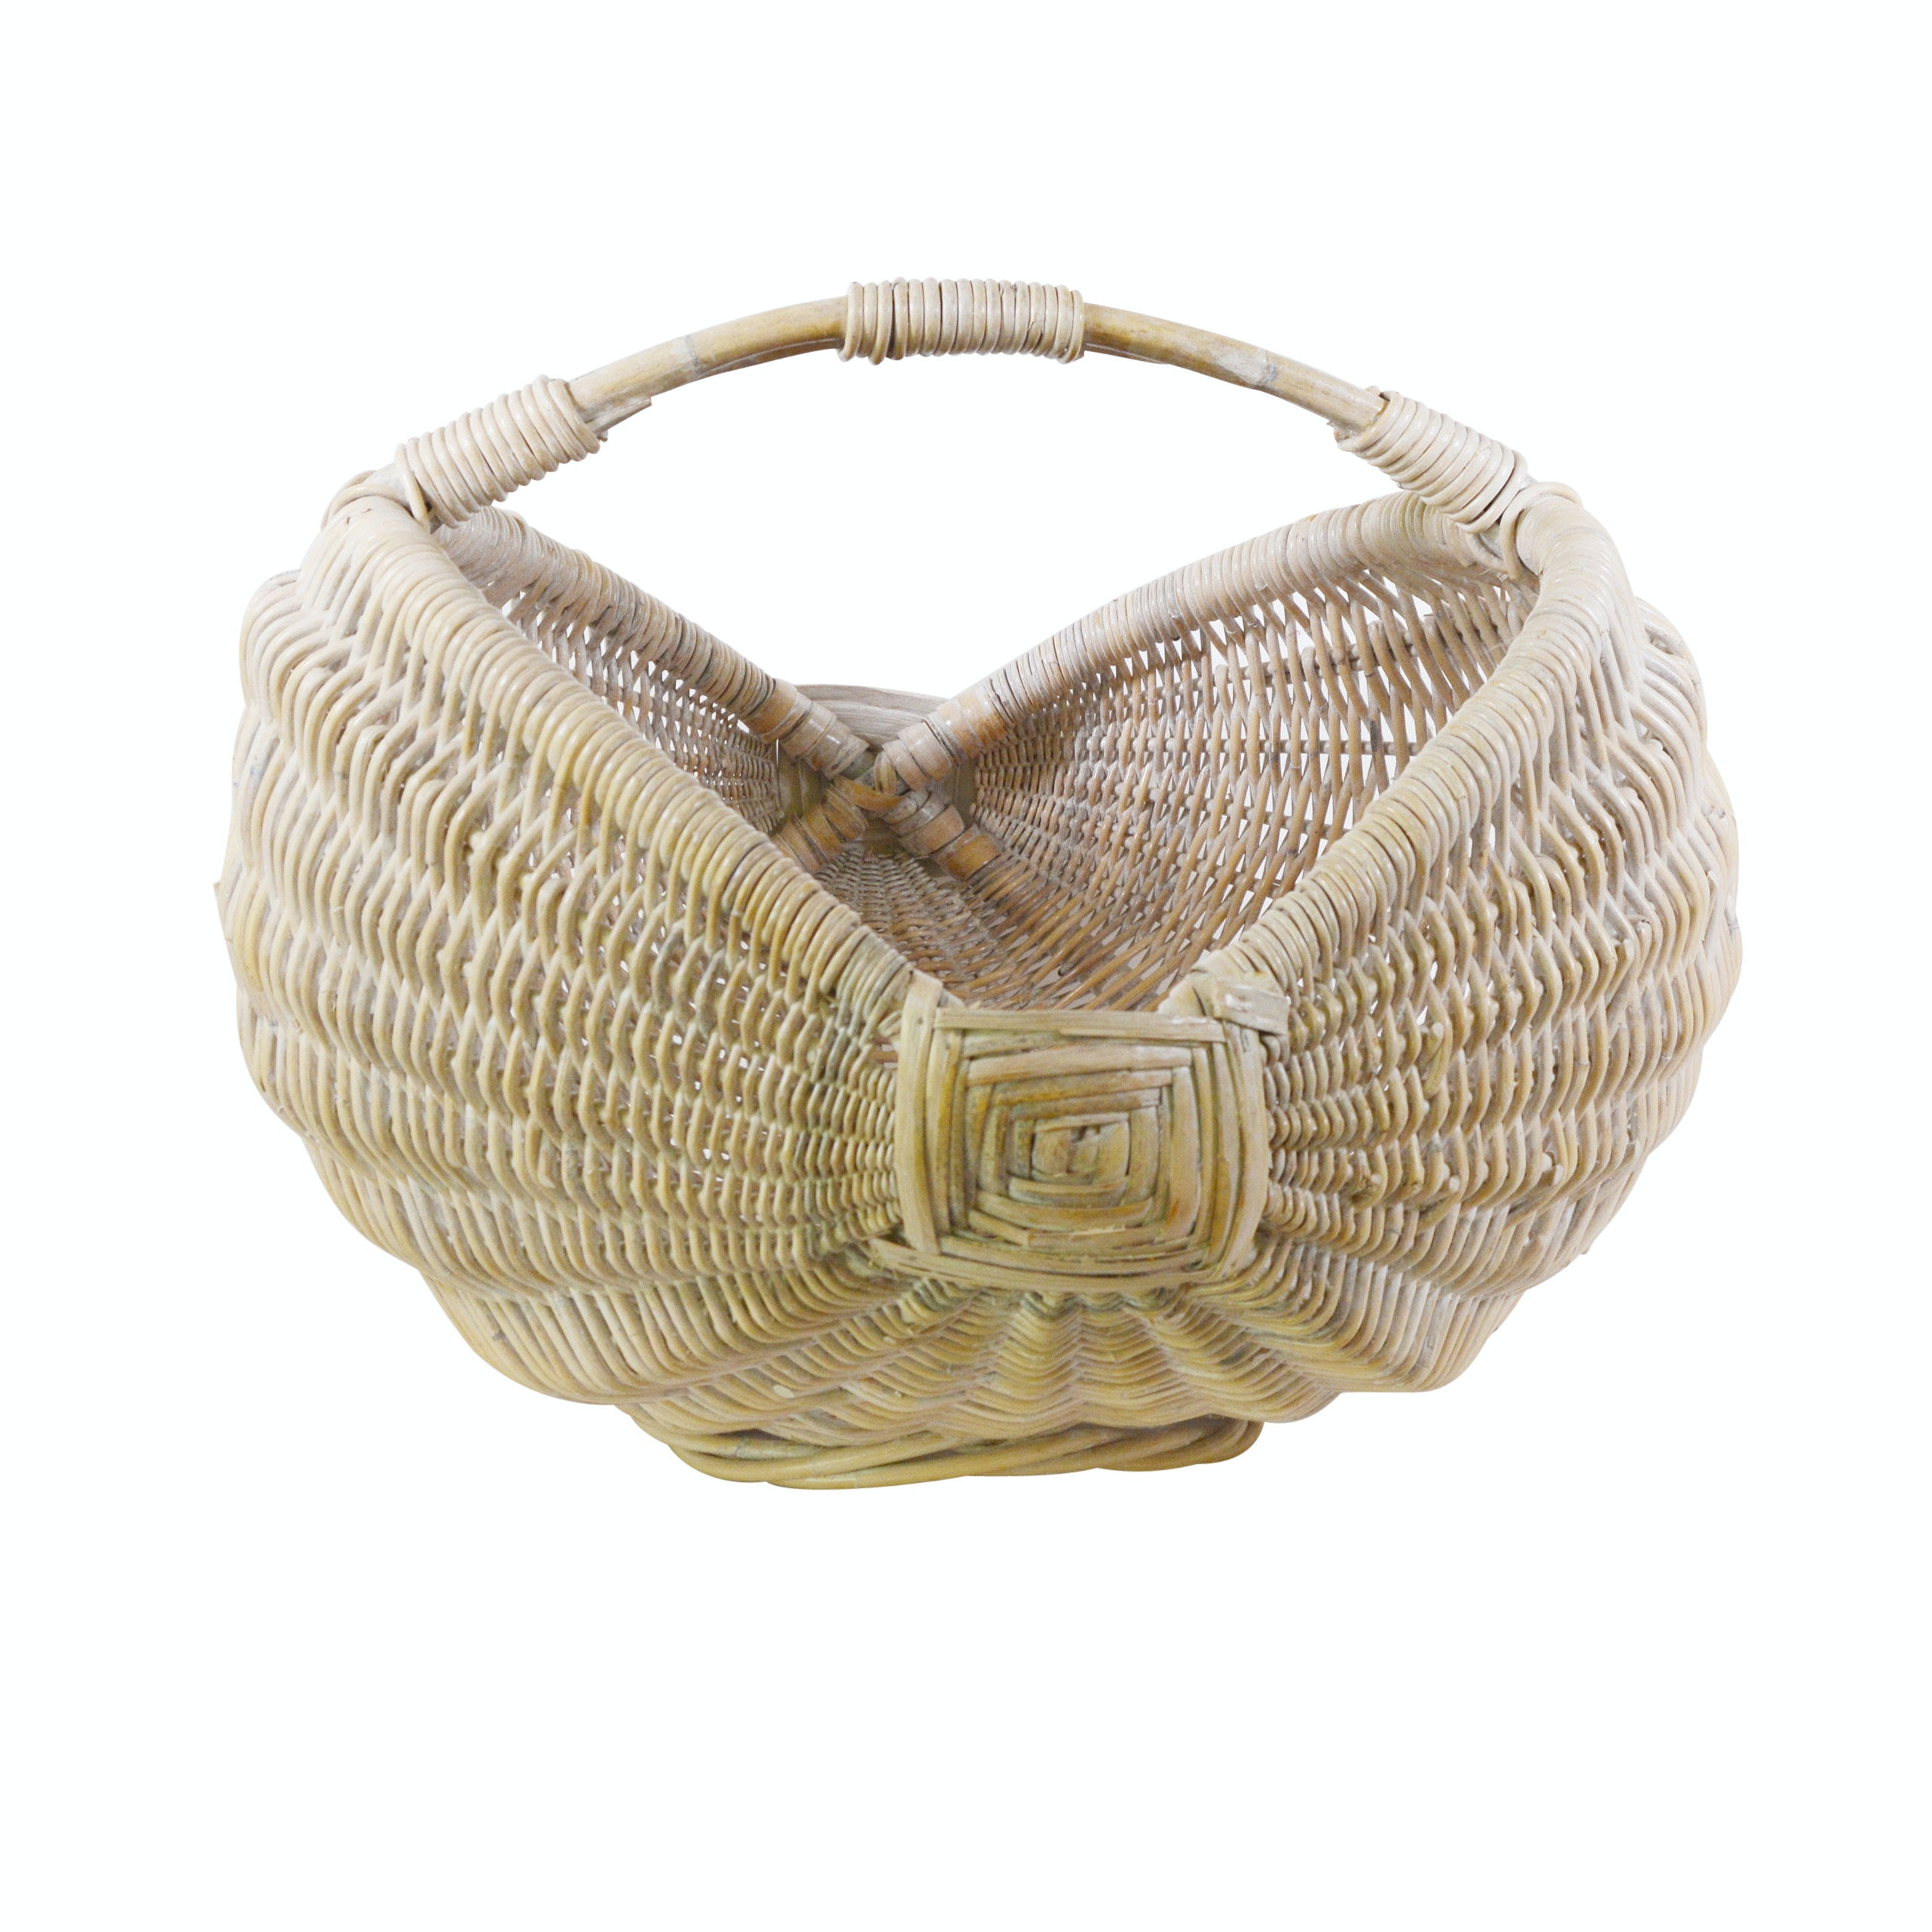 Curved Wicker Basket With Handle